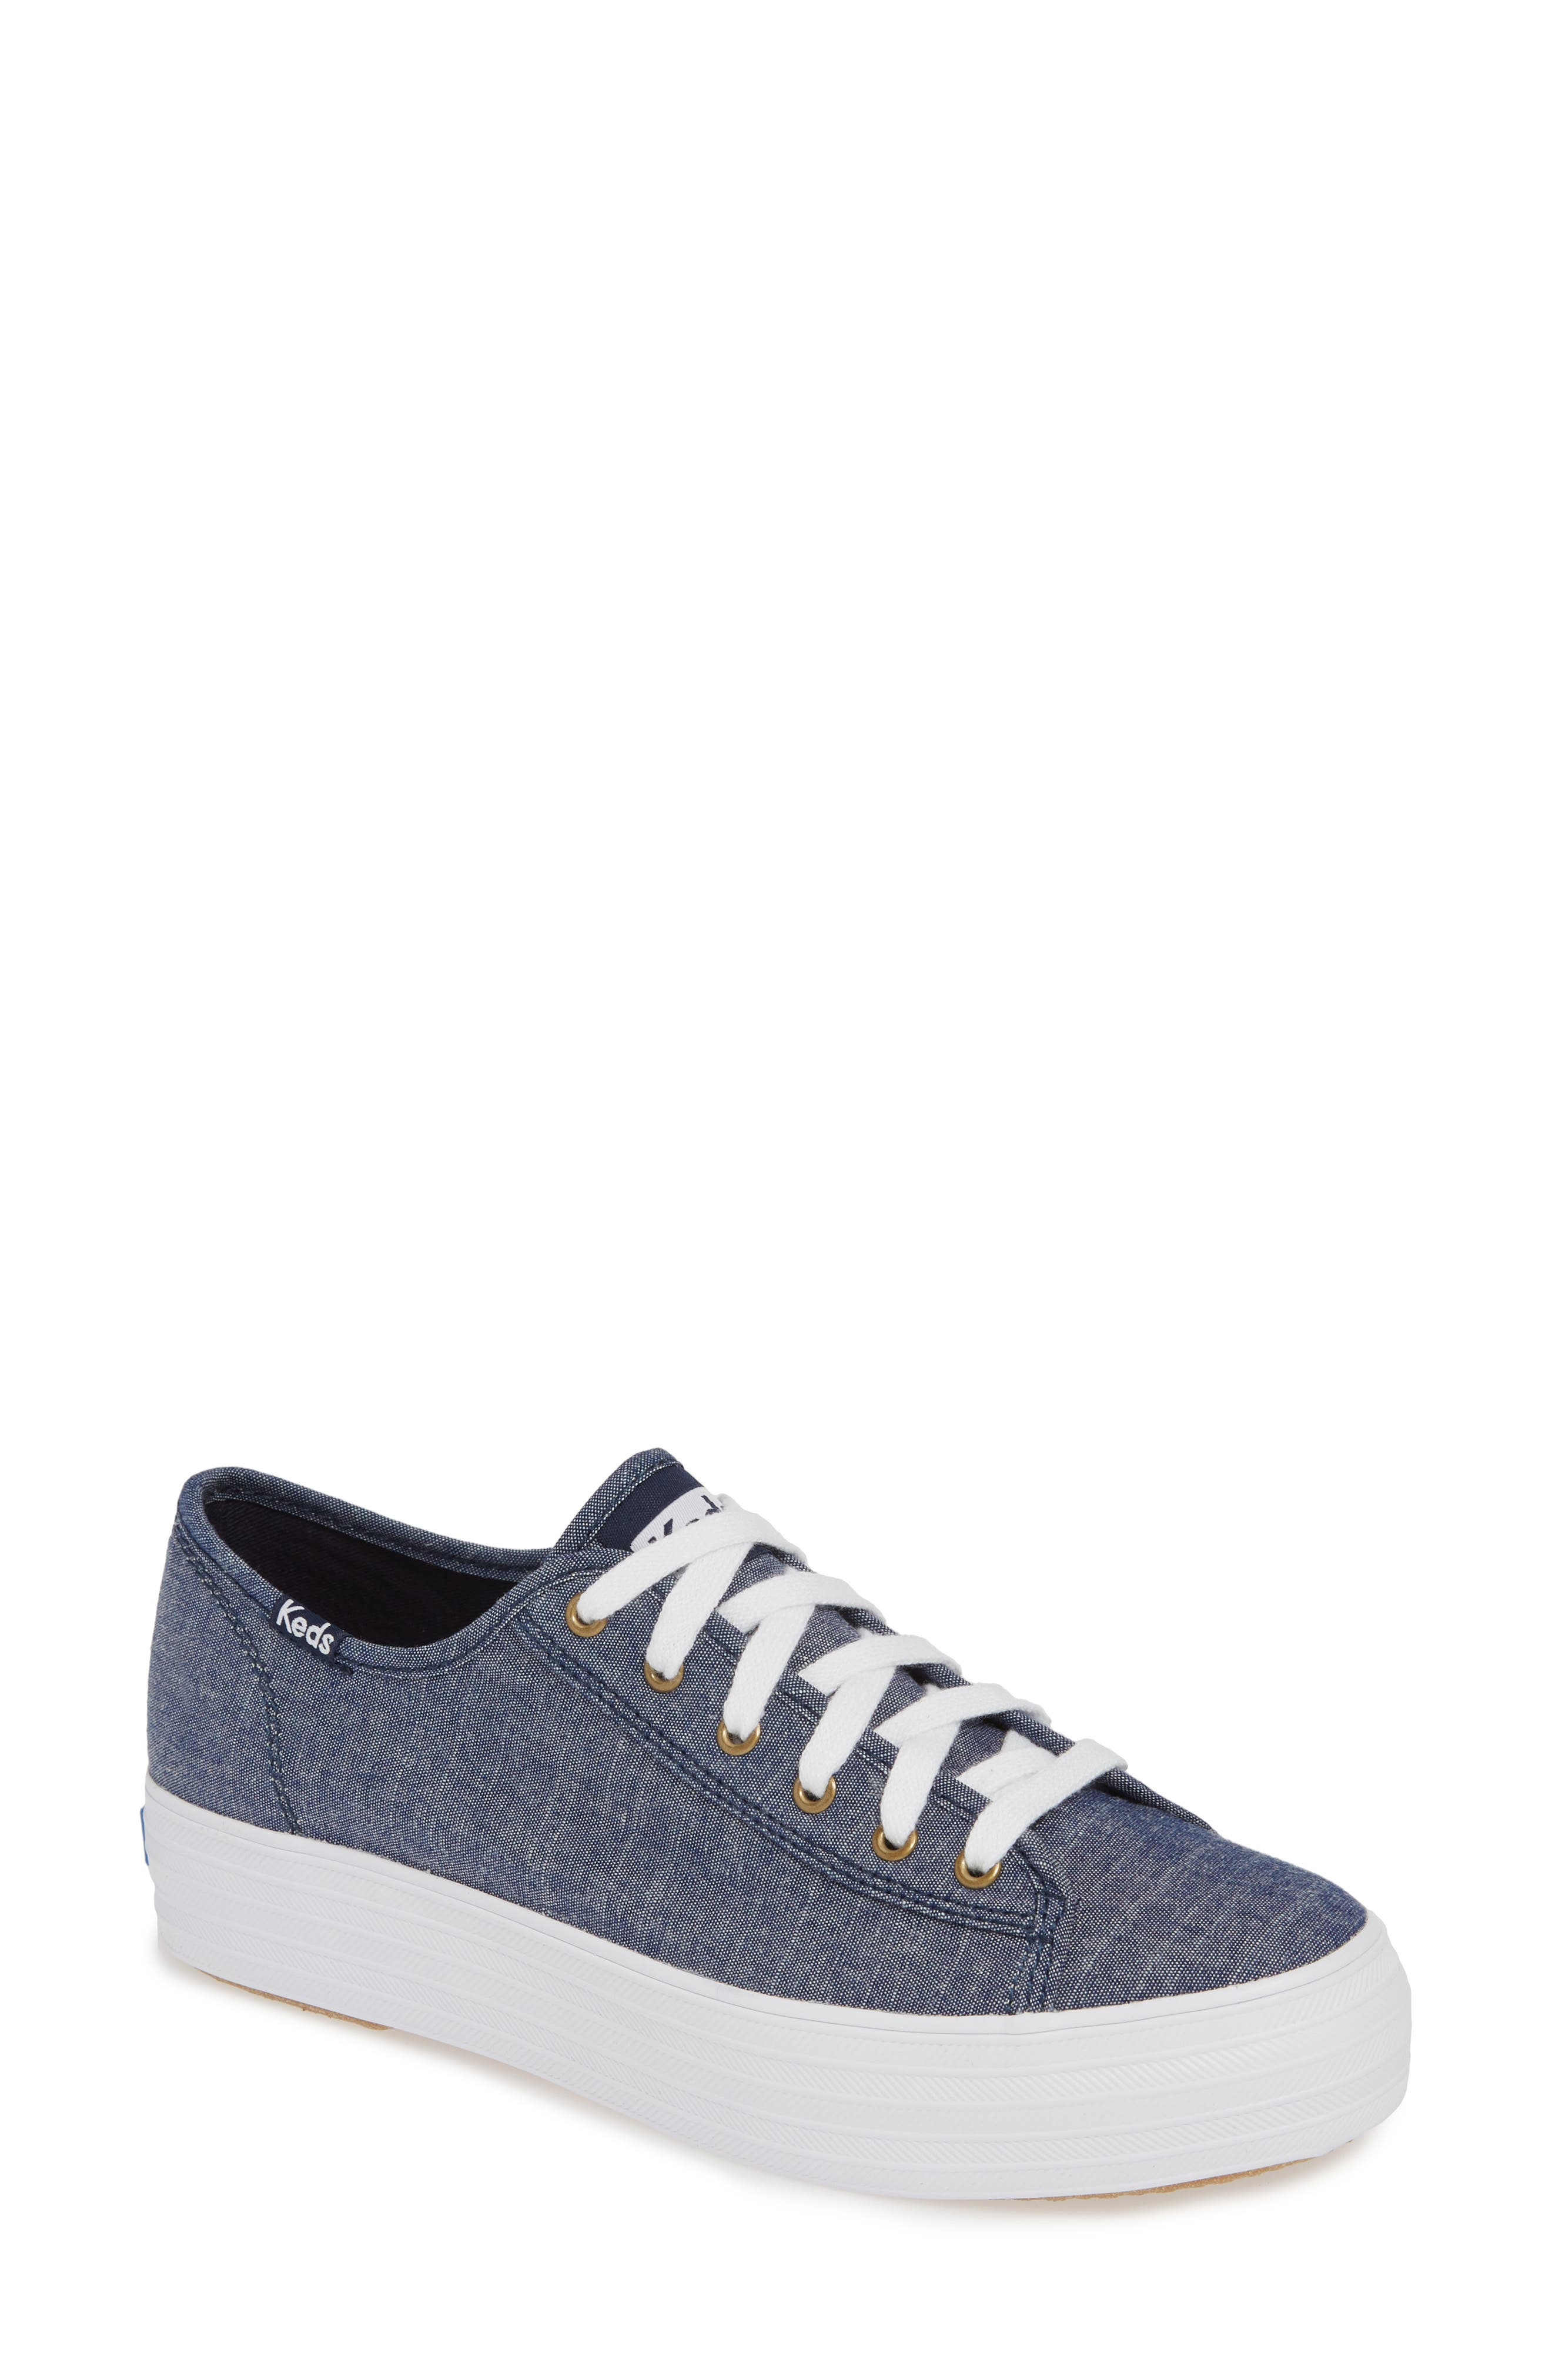 KEDS<SUP>®</SUP>, Triple Kick Platform Chambray Sneaker, Main thumbnail 1, color, BLUE